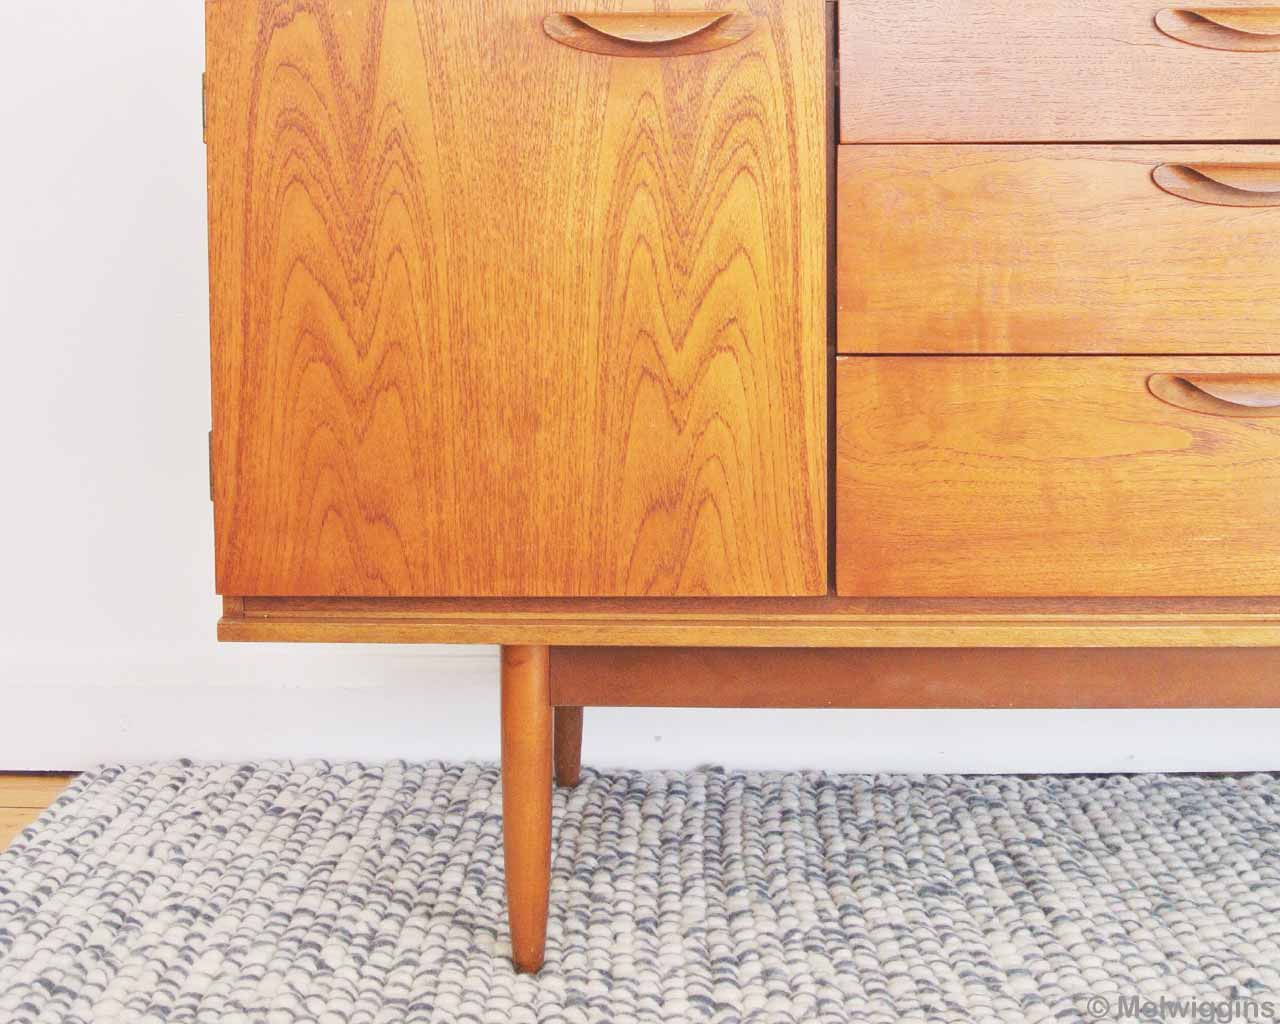 the fifties cupboard wood color felted rugs 1